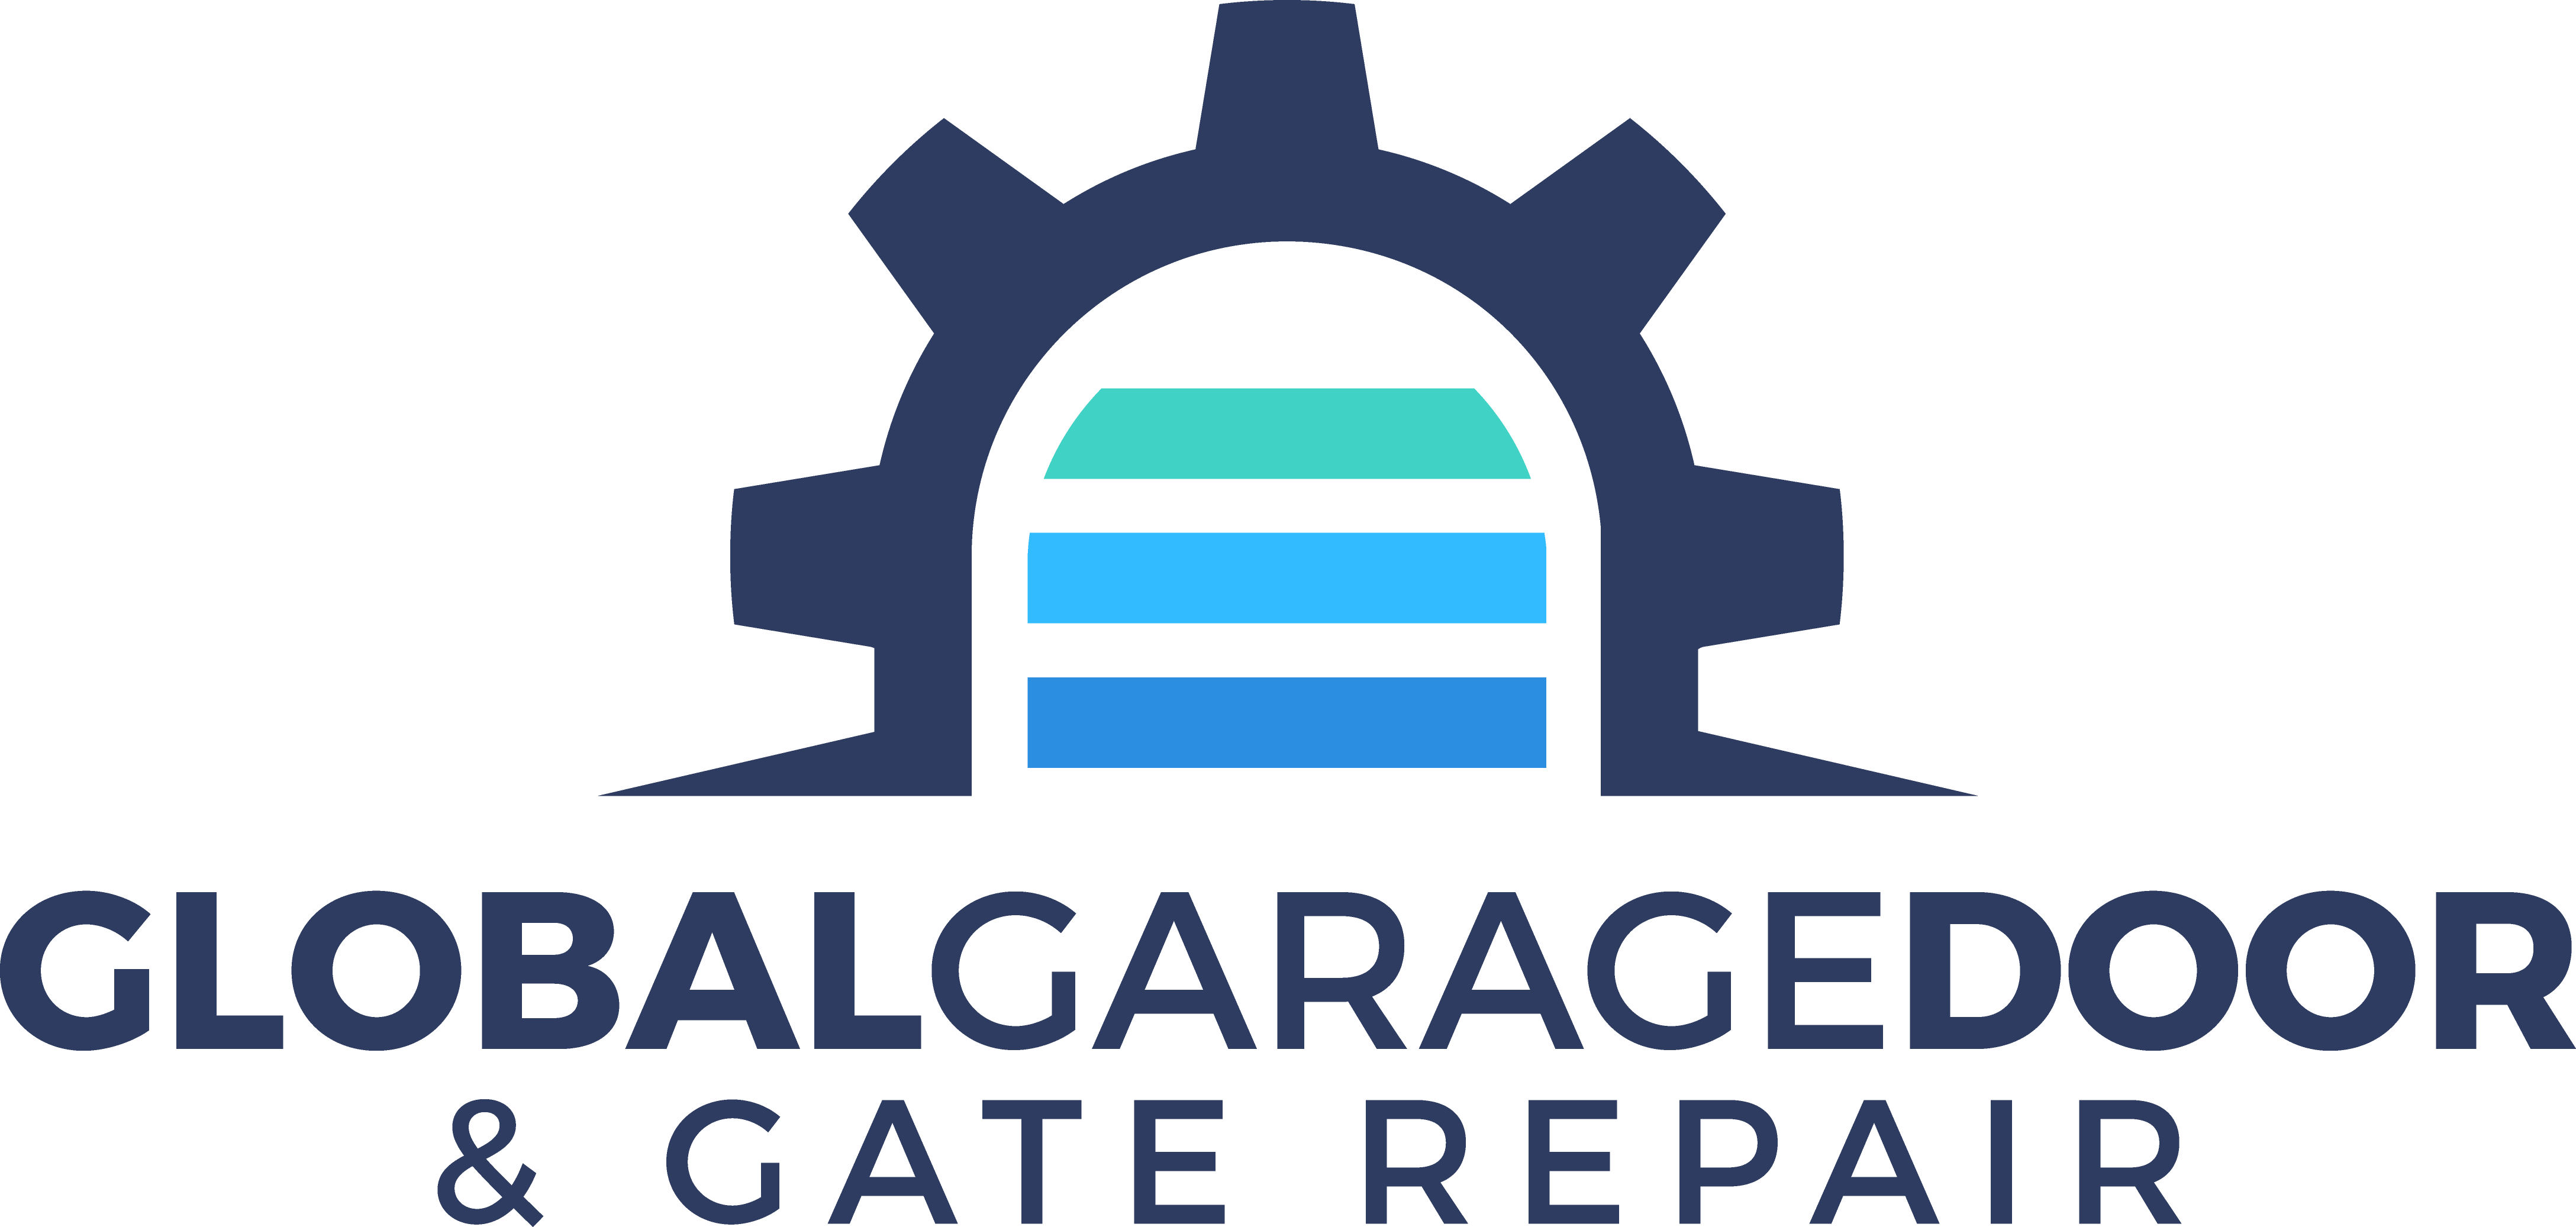 Global Garage Door & Gate Repair is a Top-Rated Roseville Garage Door Repair Company in CA